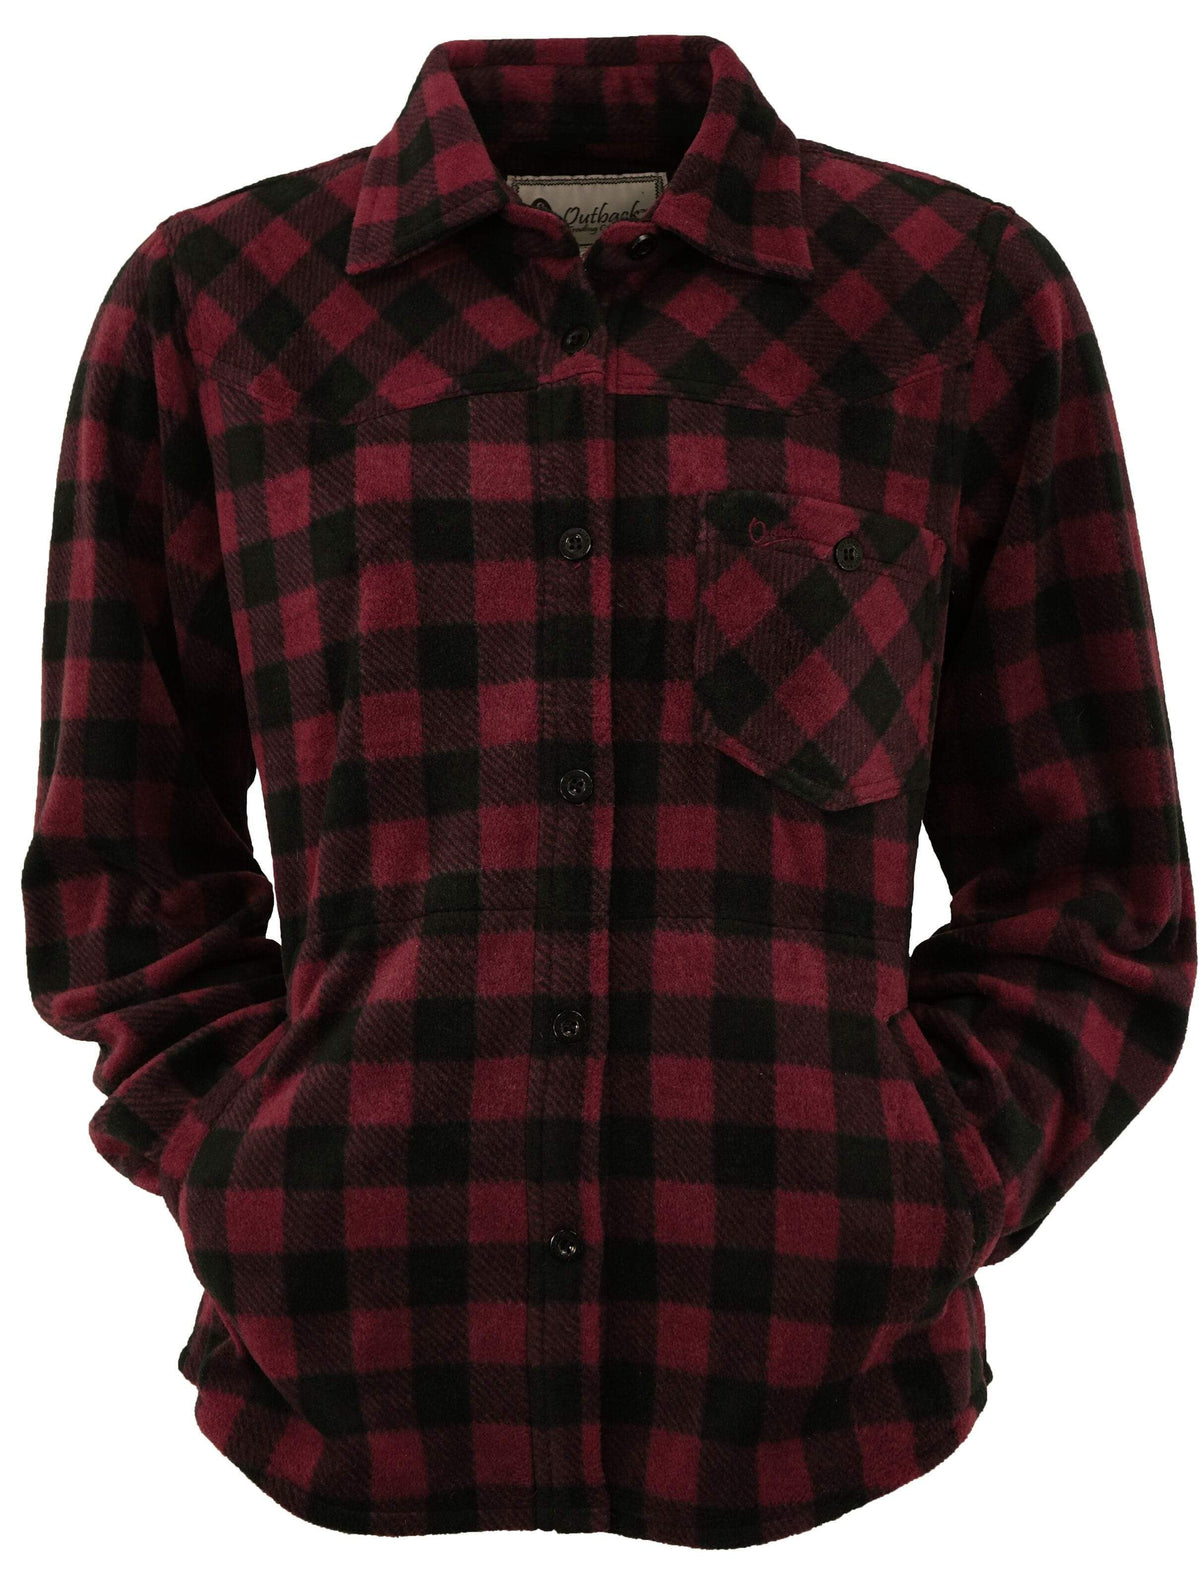 Outback Trading Company Ladies Big Shirt WINE / SM 4267-WIN-SM